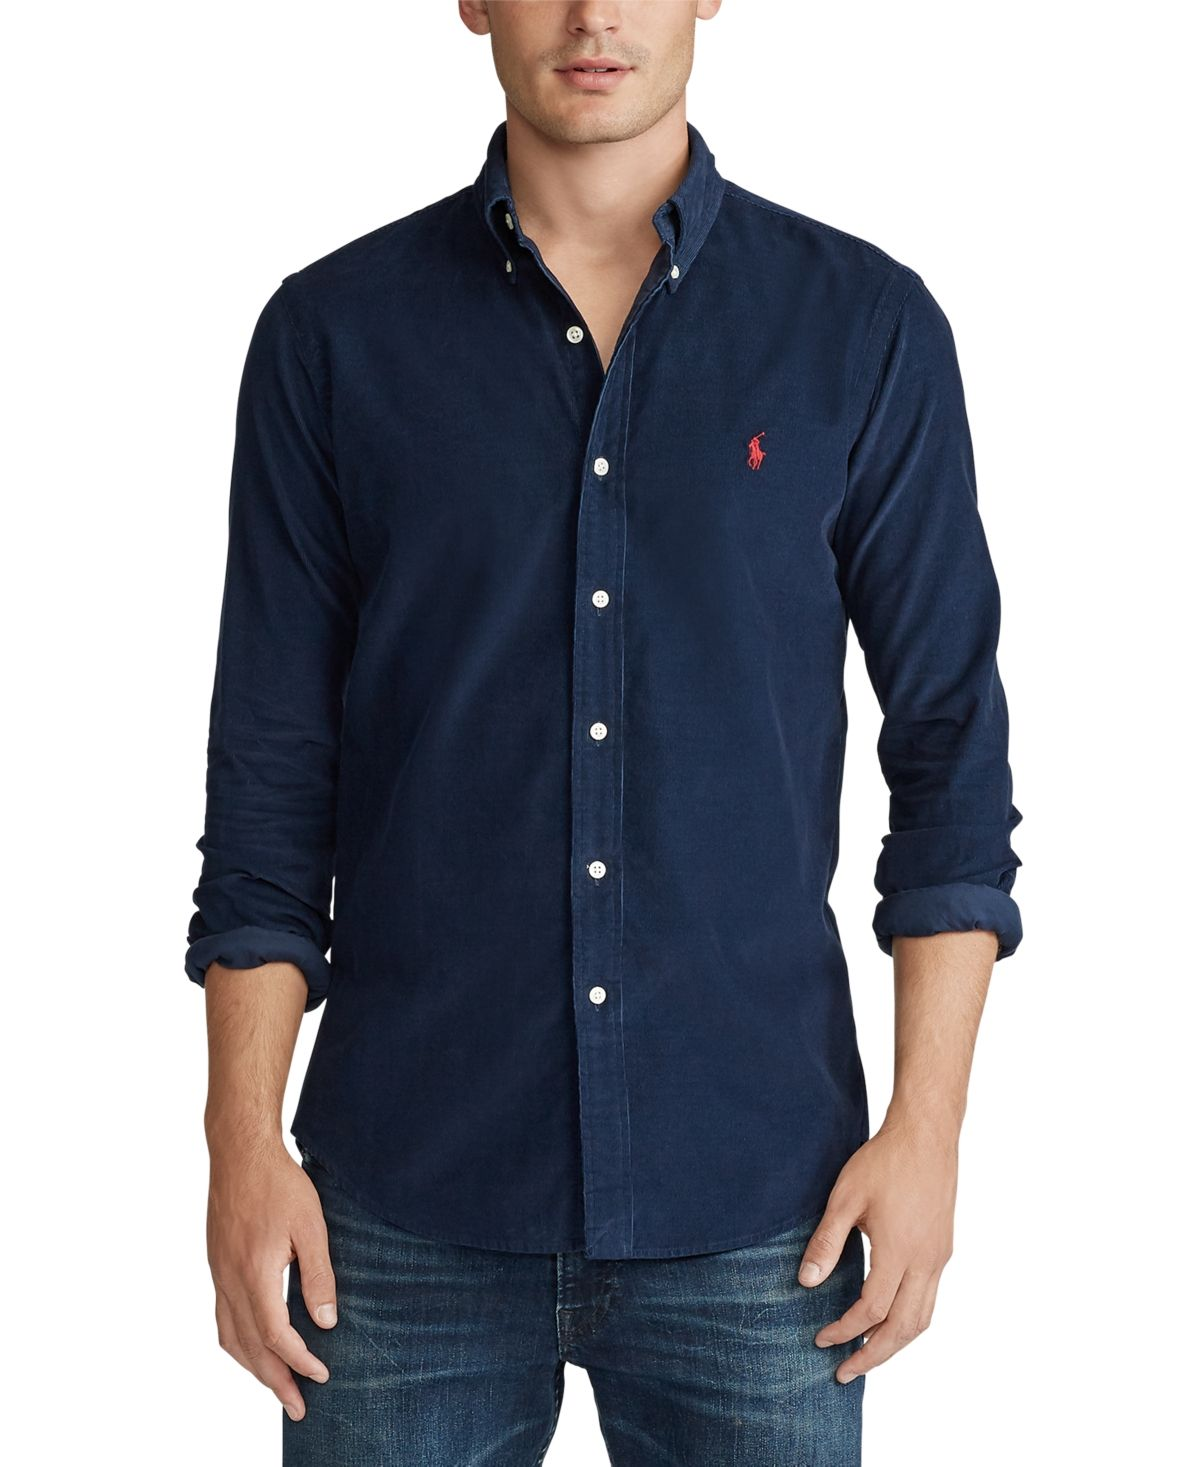 Polo Ralph Lauren Men's Big & Tall Wale Corduroy Sport Shirt & Reviews - Casual Button-Down Shirts - Men - Macy's #shirtsale